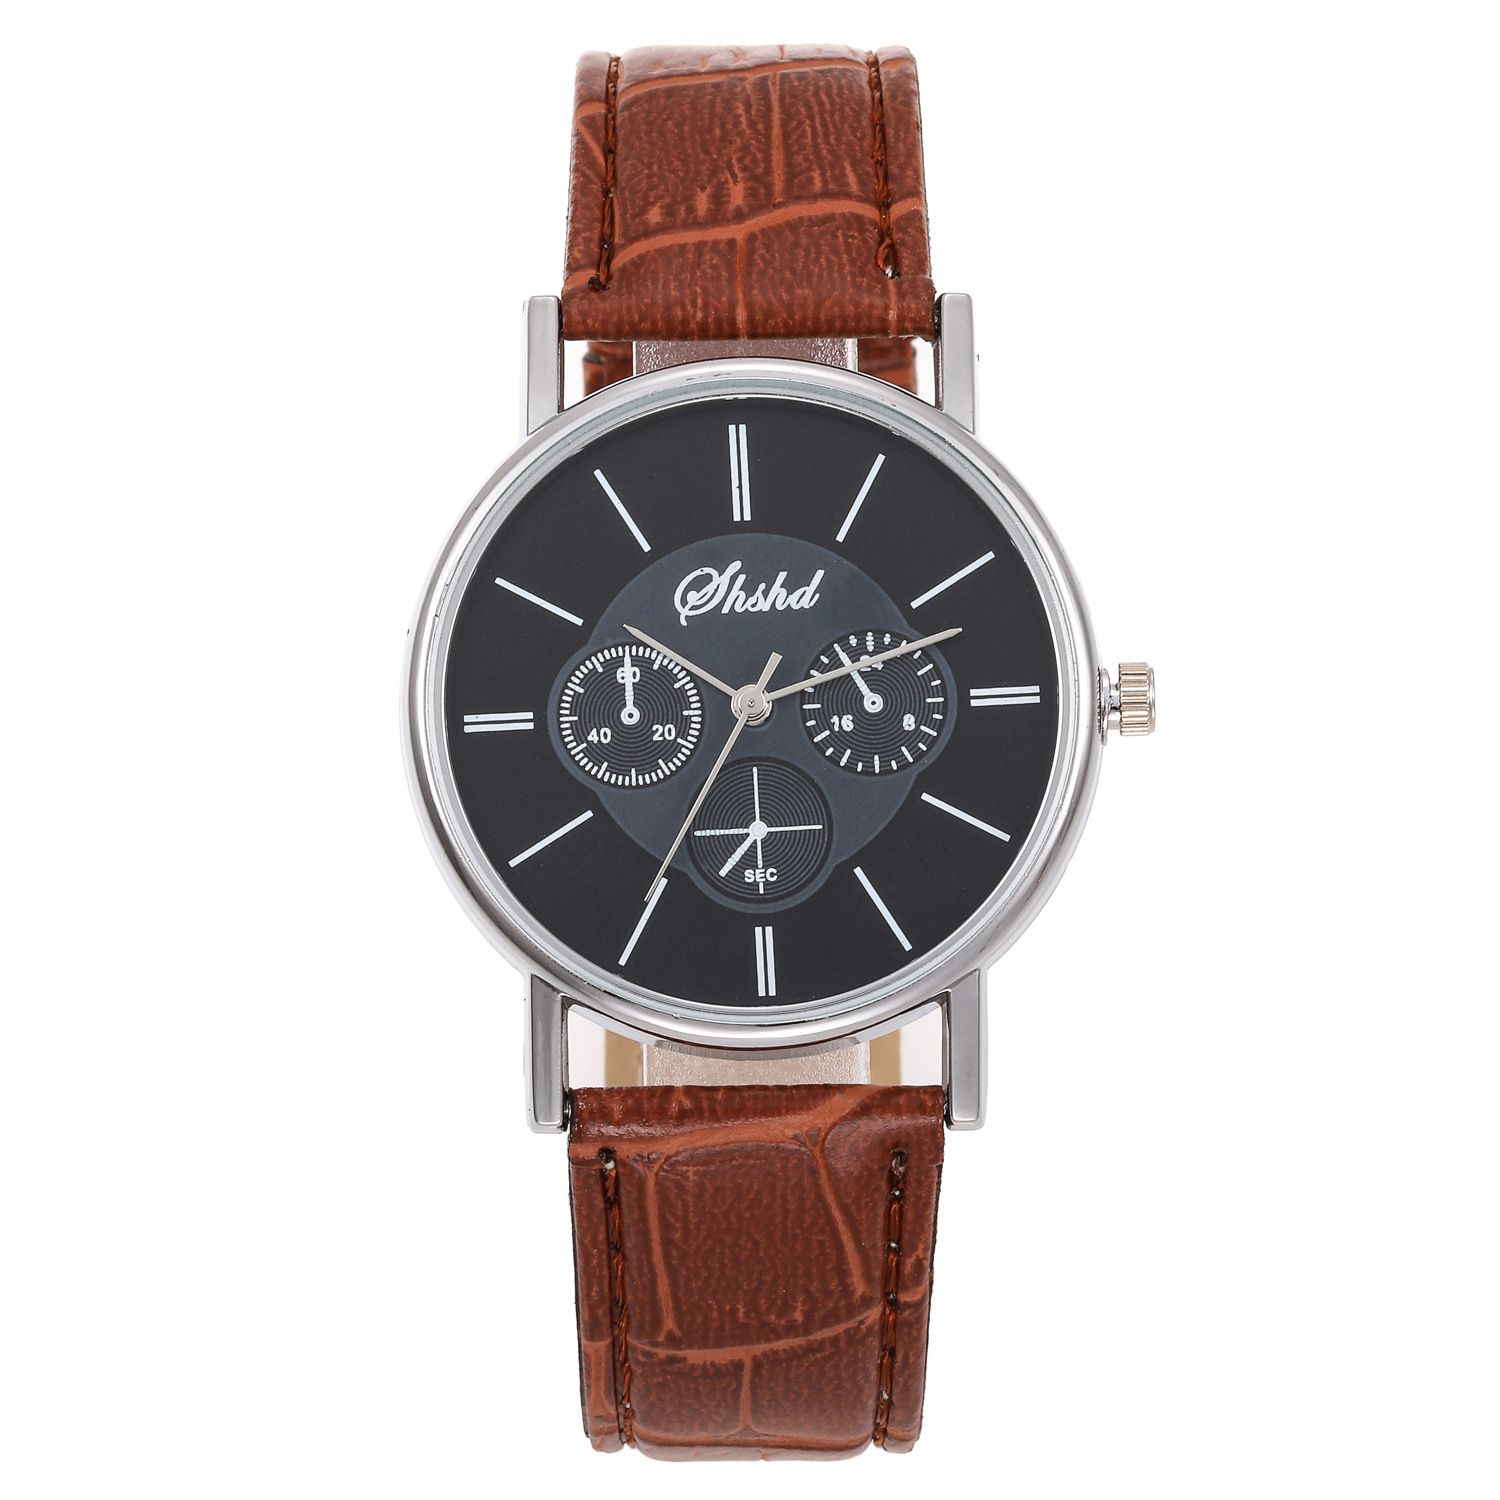 Foreign Trade New Style Thin Eyes Belt Watch Simple Measuring Unisex Watch Wholesale